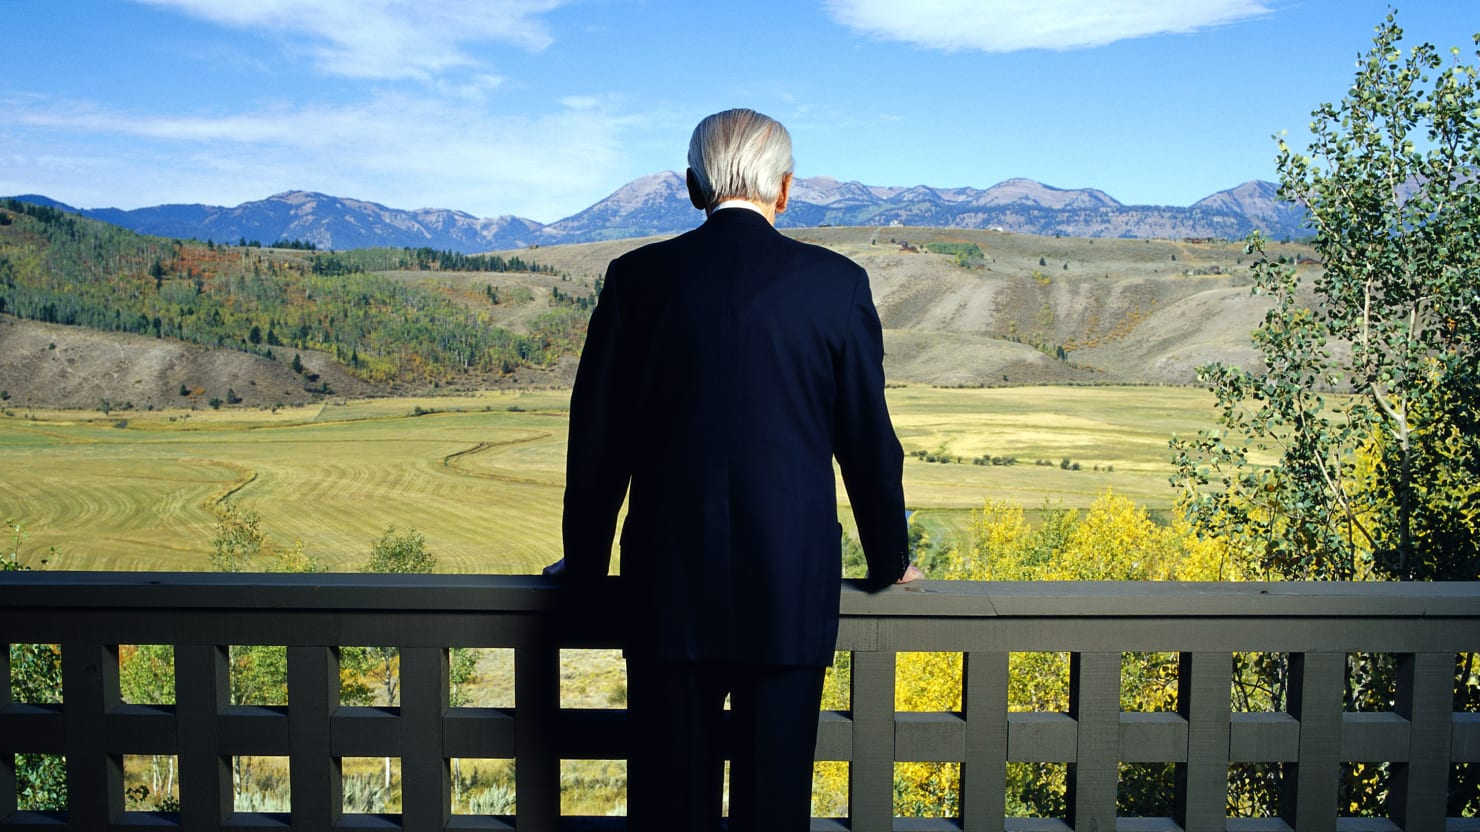 Billionaires Cowboy Up and Turn Wyoming Into a Gated Community